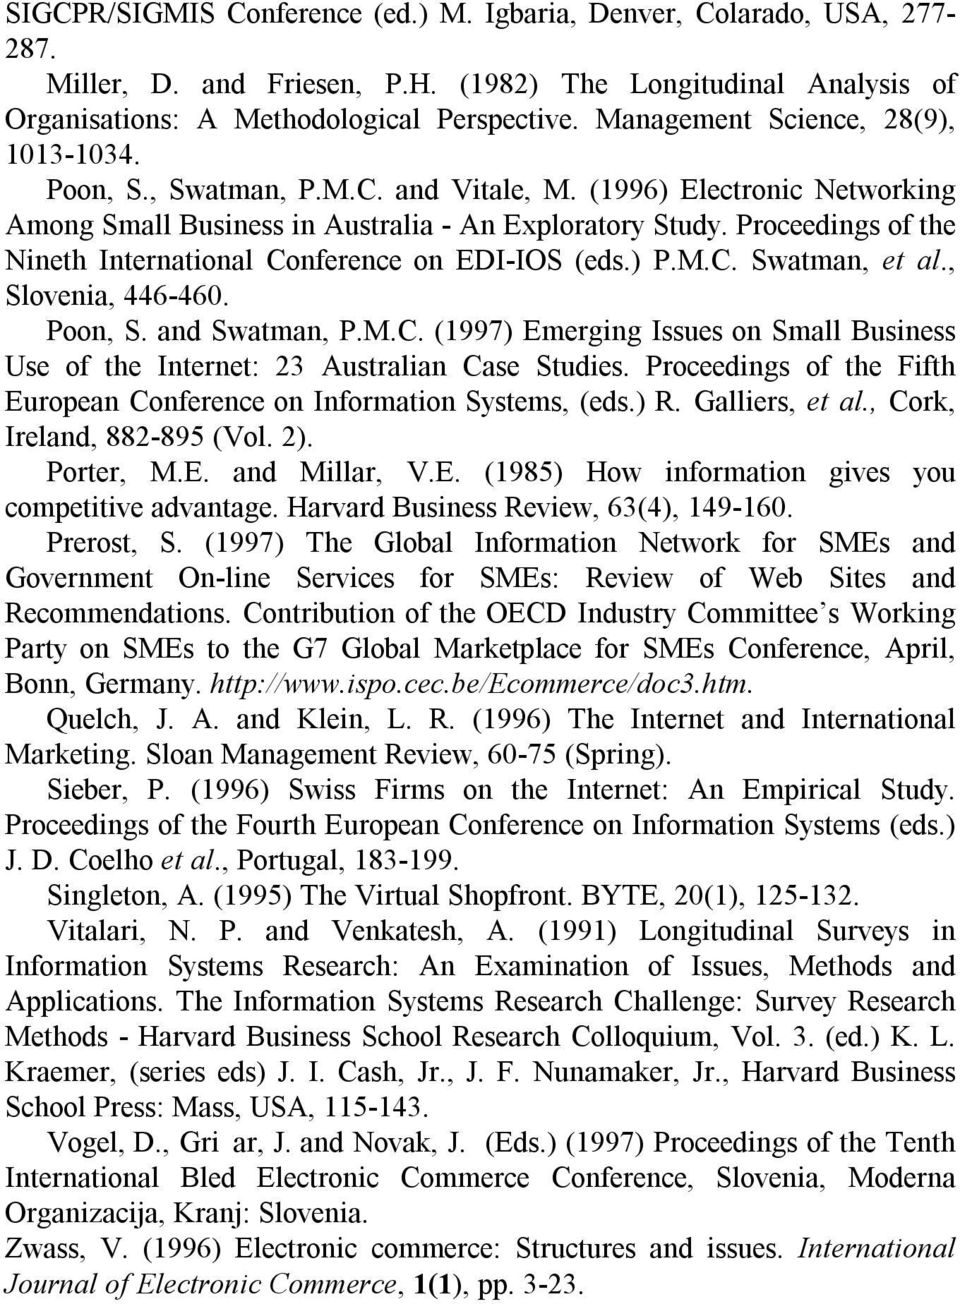 Proceedings of the Nineth International Conference on EDI-IOS (eds.) P.M.C. Swatman, et al., Slovenia, 446-460. Poon, S. and Swatman, P.M.C. (1997) Emerging Issues on Small Business Use of the Internet: 23 Australian Case Studies.